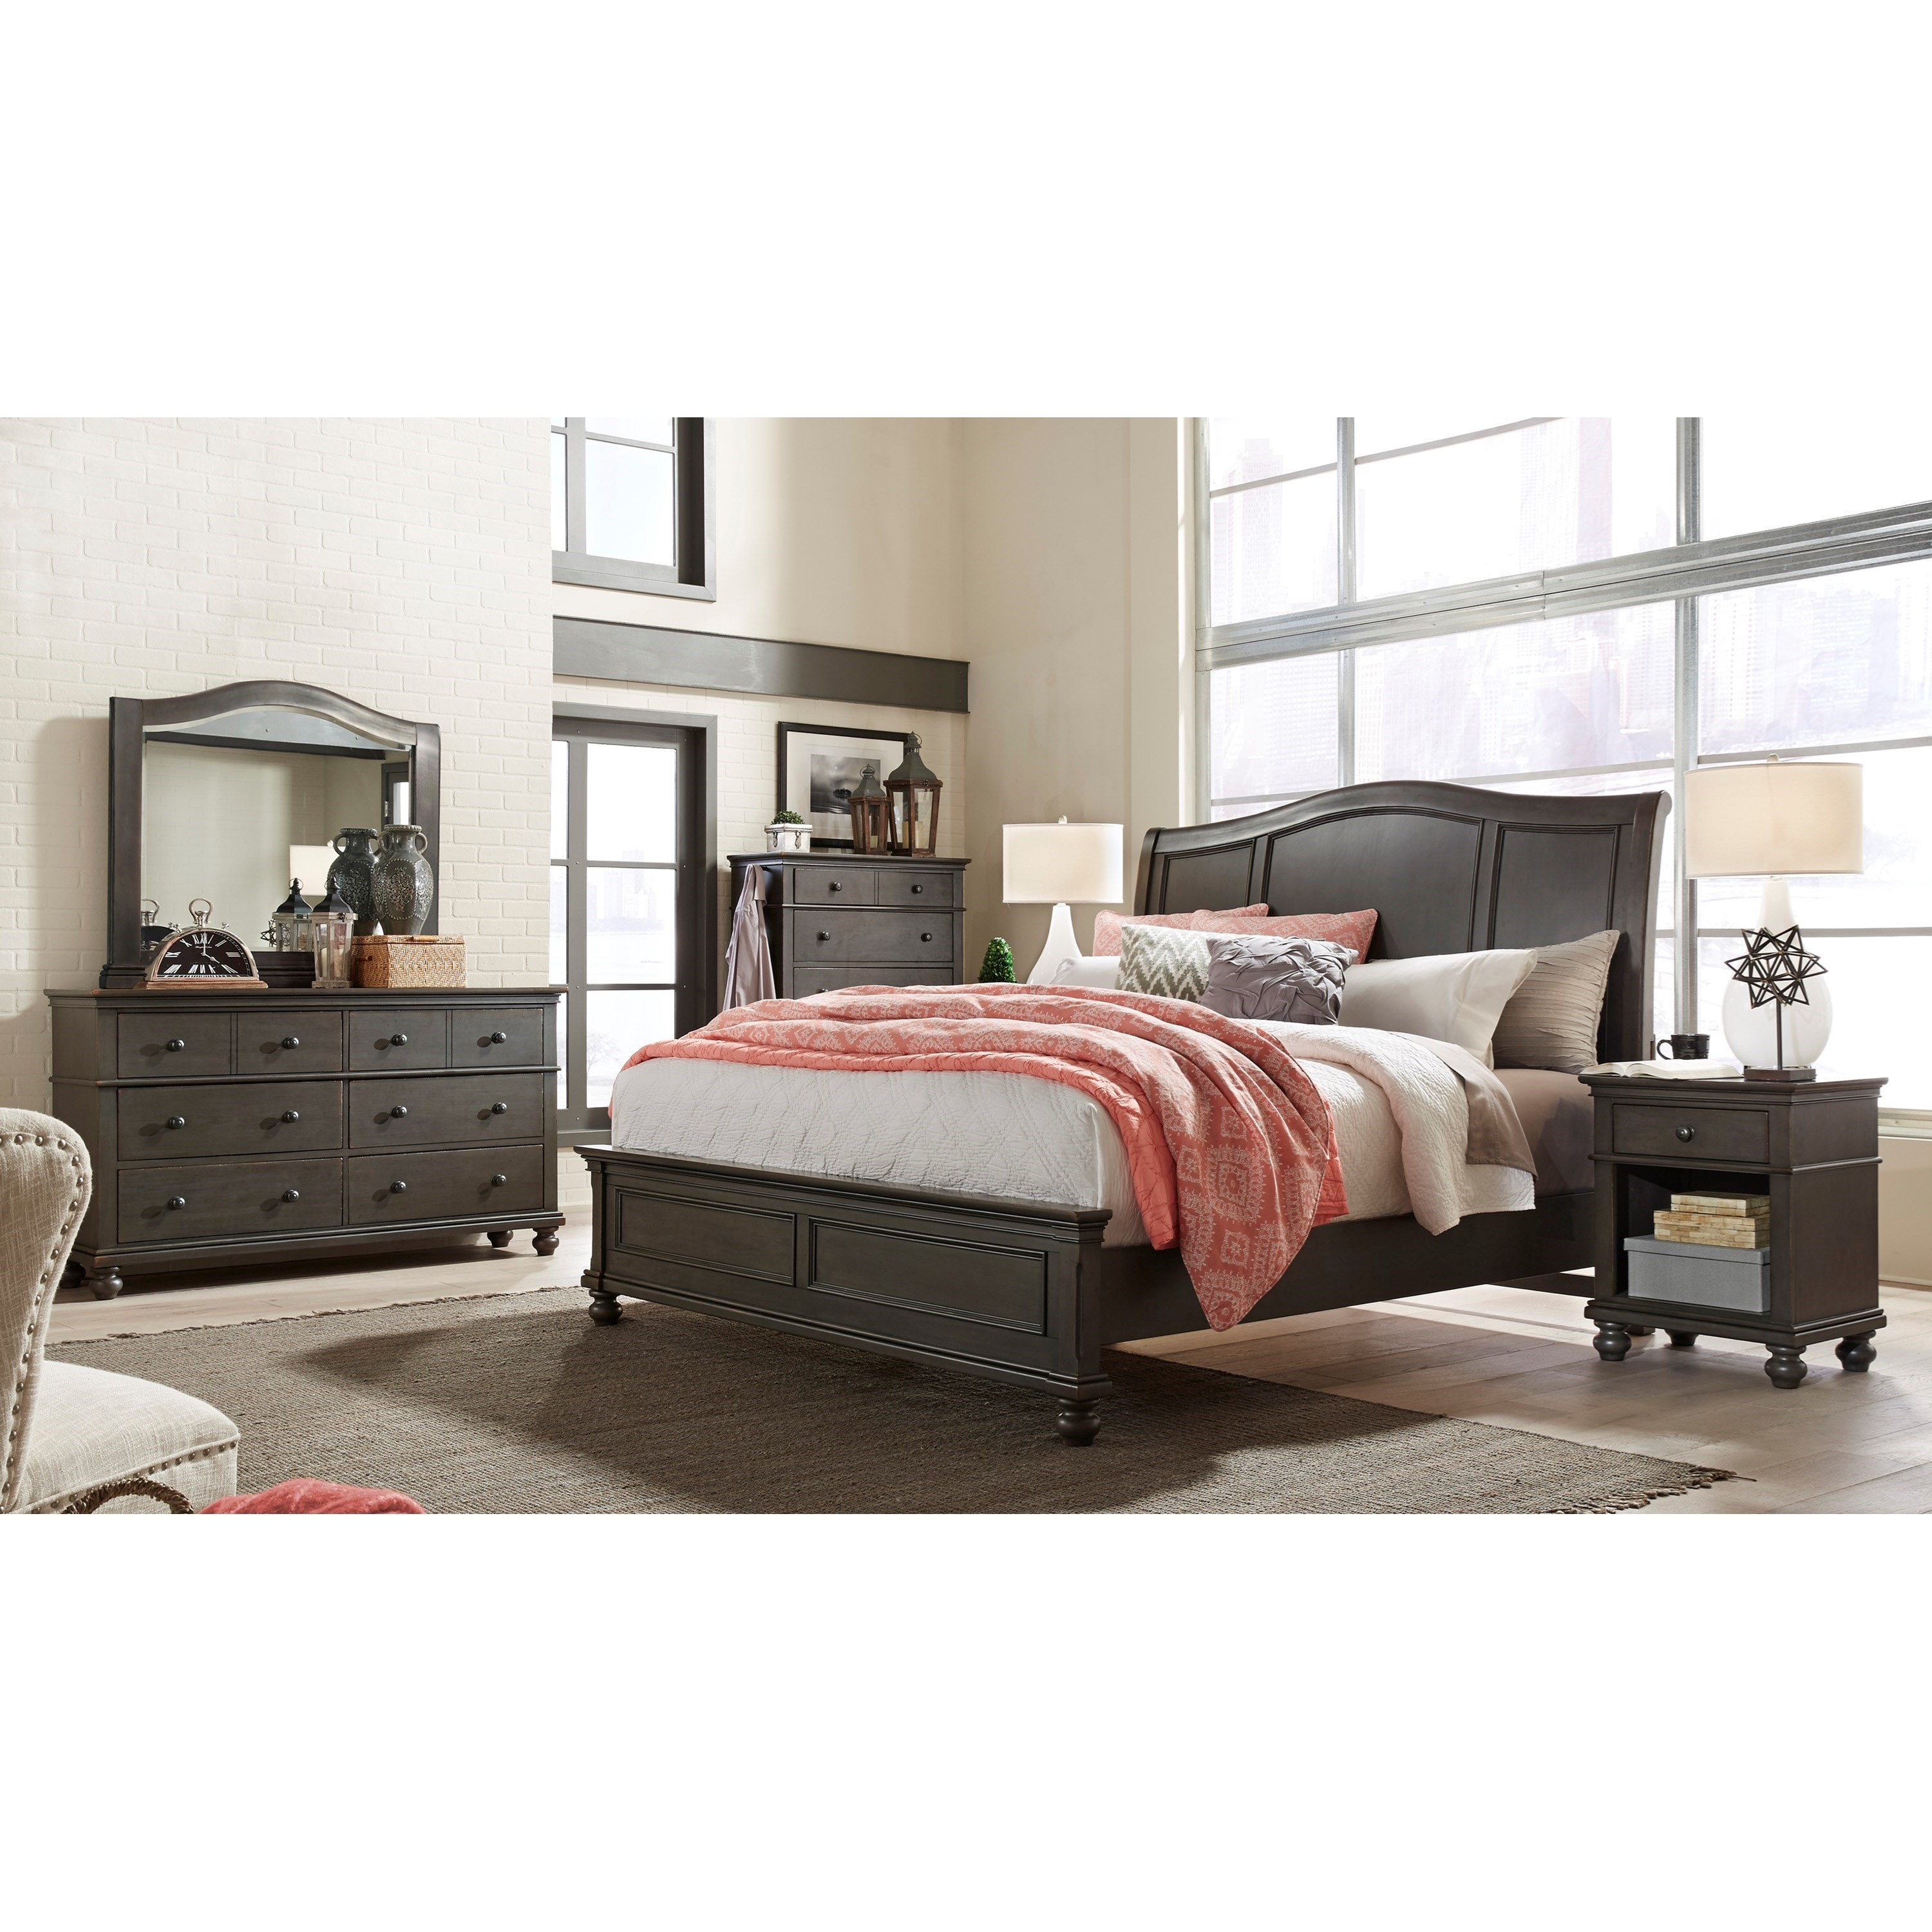 Oxford King Bedroom Group by Aspenhome at Walker's Furniture